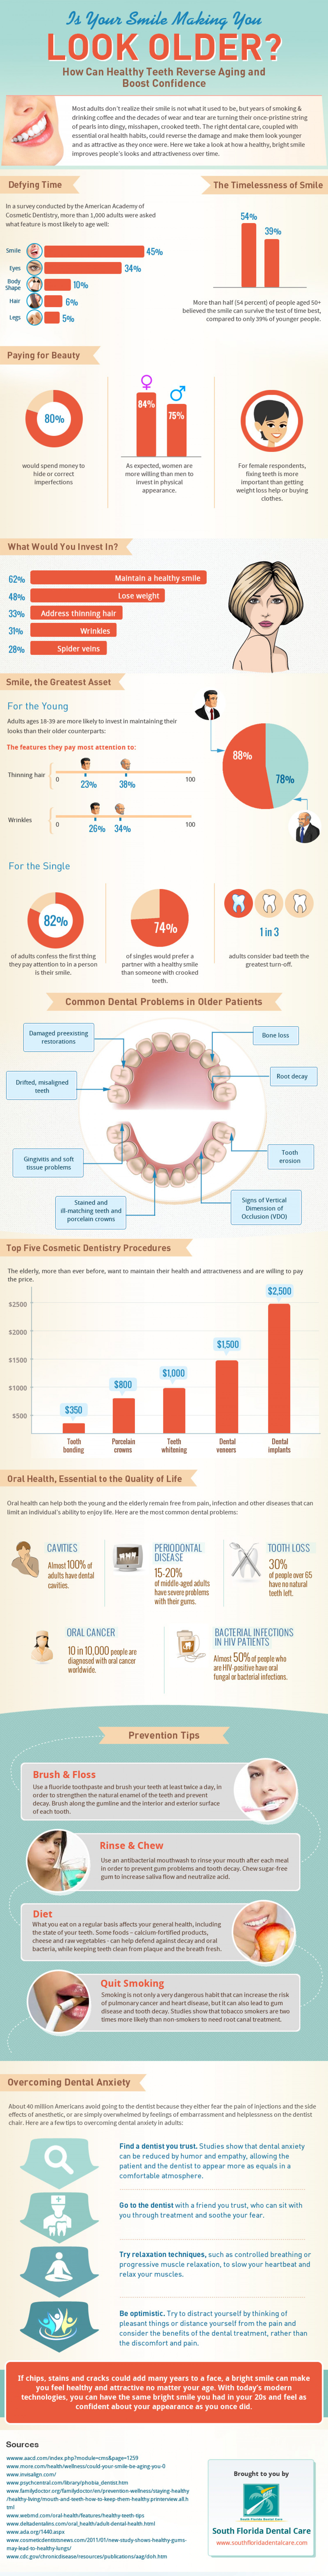 Is Your Smile Making You Look Older? Infographic